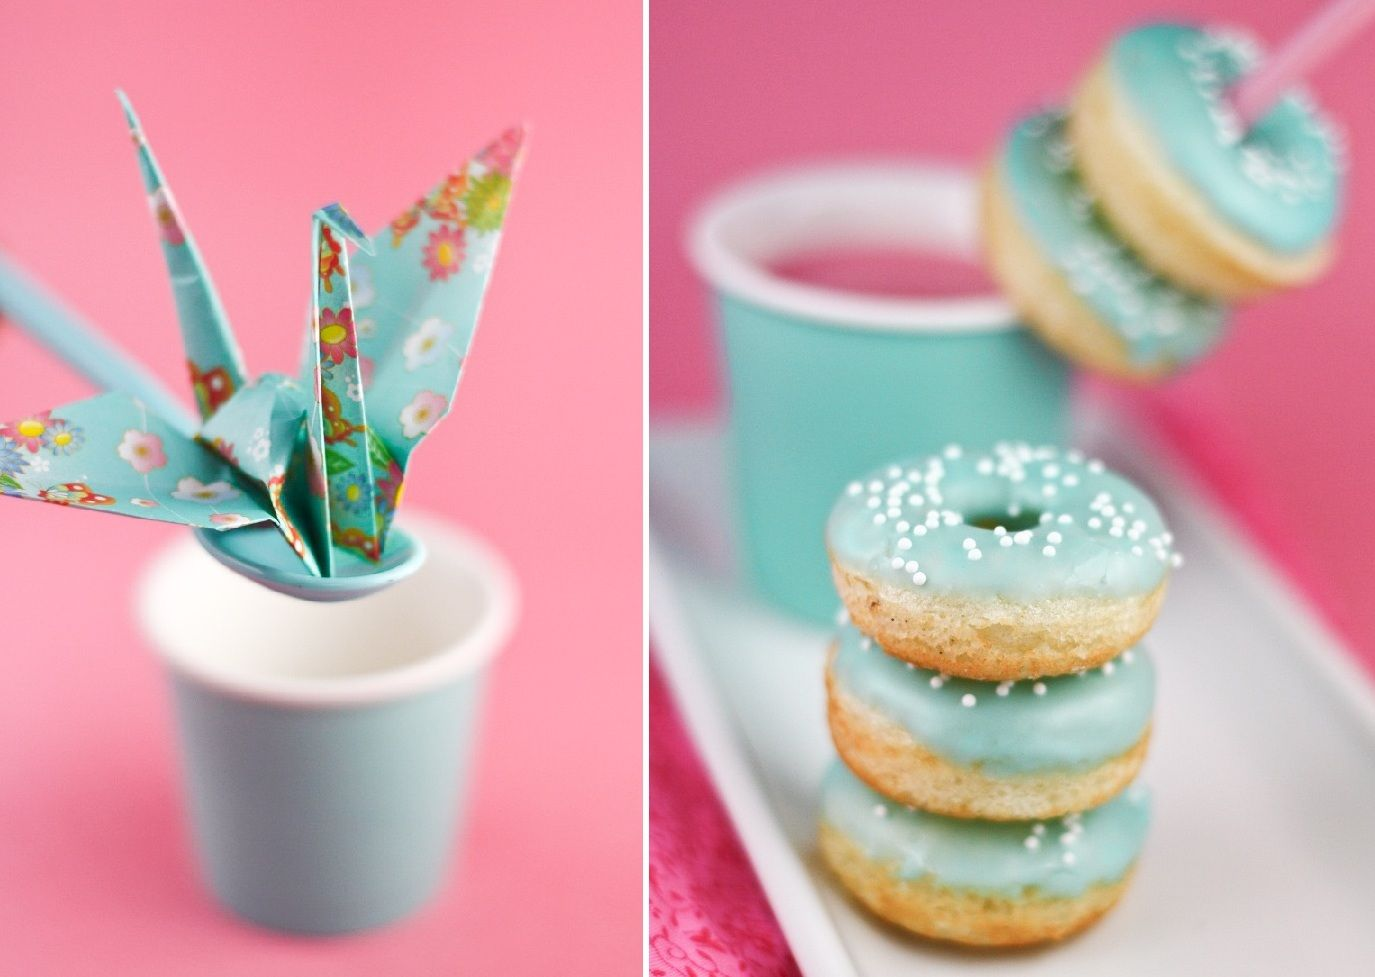 By another pinner: Sprinkle Bakes Vanilla Bean Baby Doughnuts - Check out these pinboards serious pin crush = Dotcoms For Moms